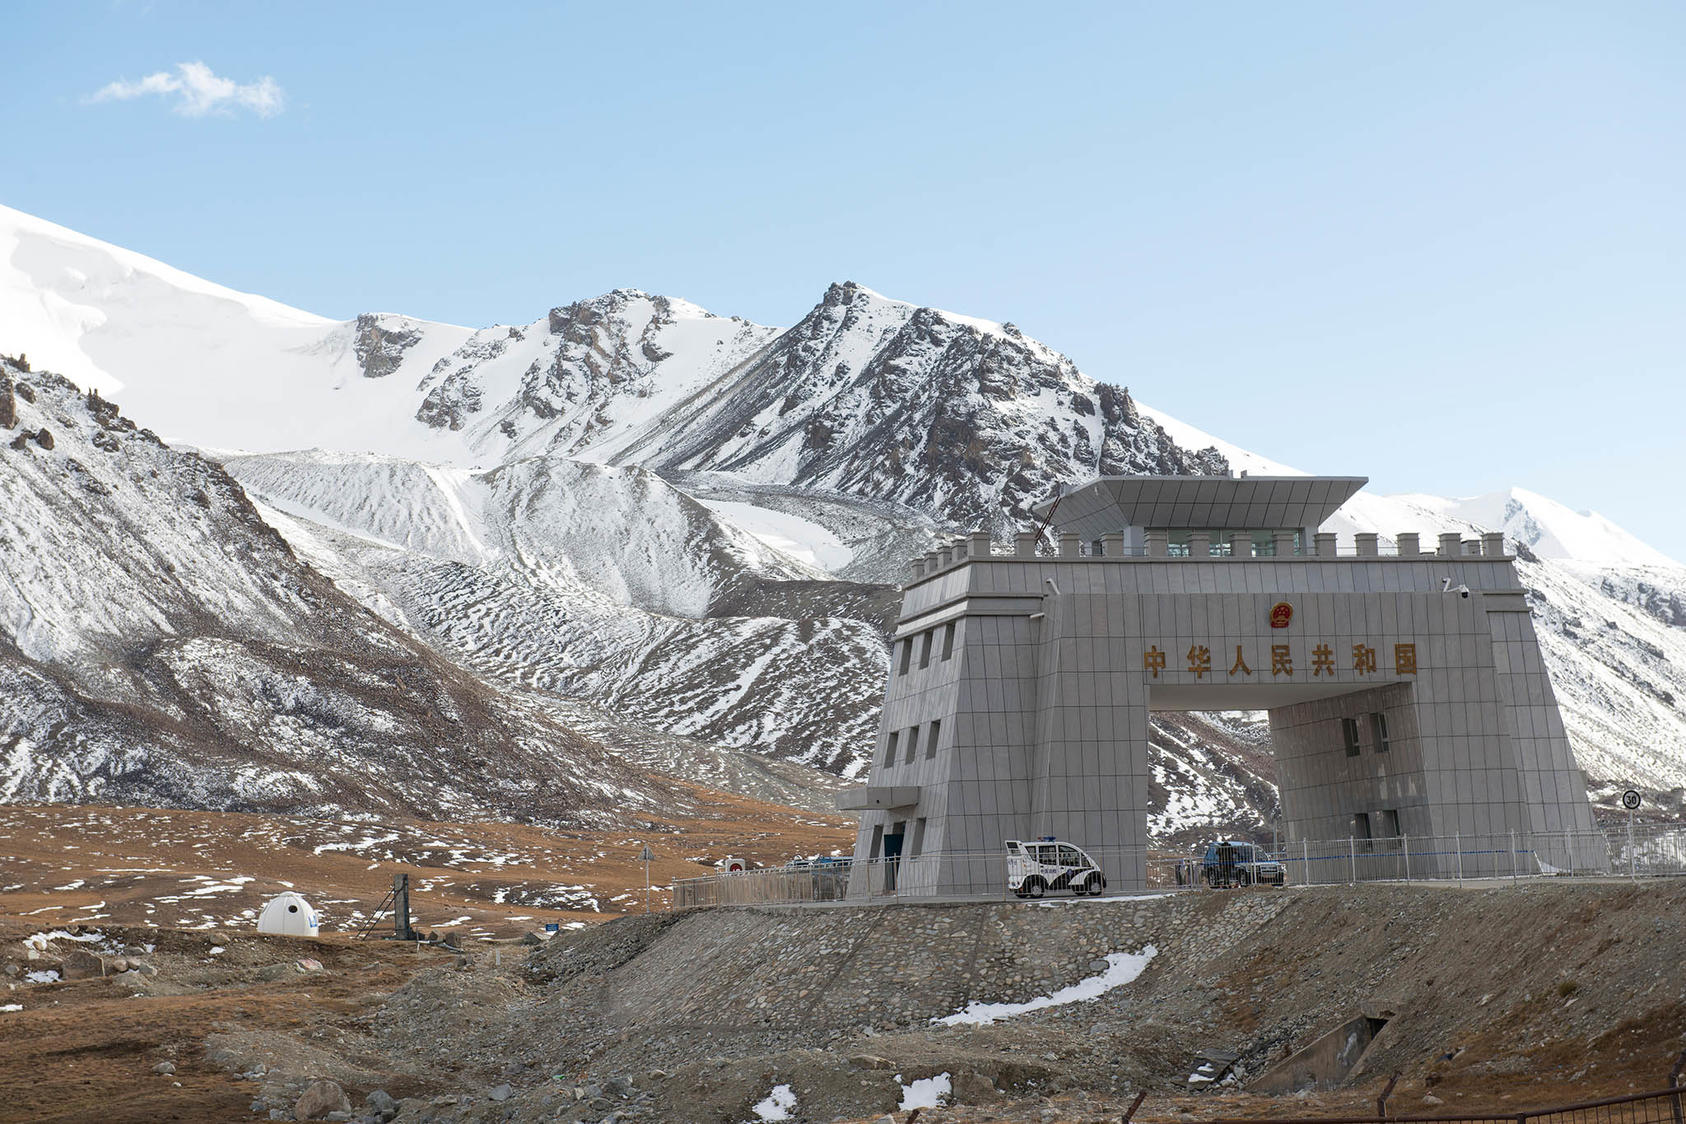 The Karakoram Highway connects Pakistan and China through the Khunjerab Pass, the highest altitude border crossing in the world. (View Stock/Alamy Stock Photo)